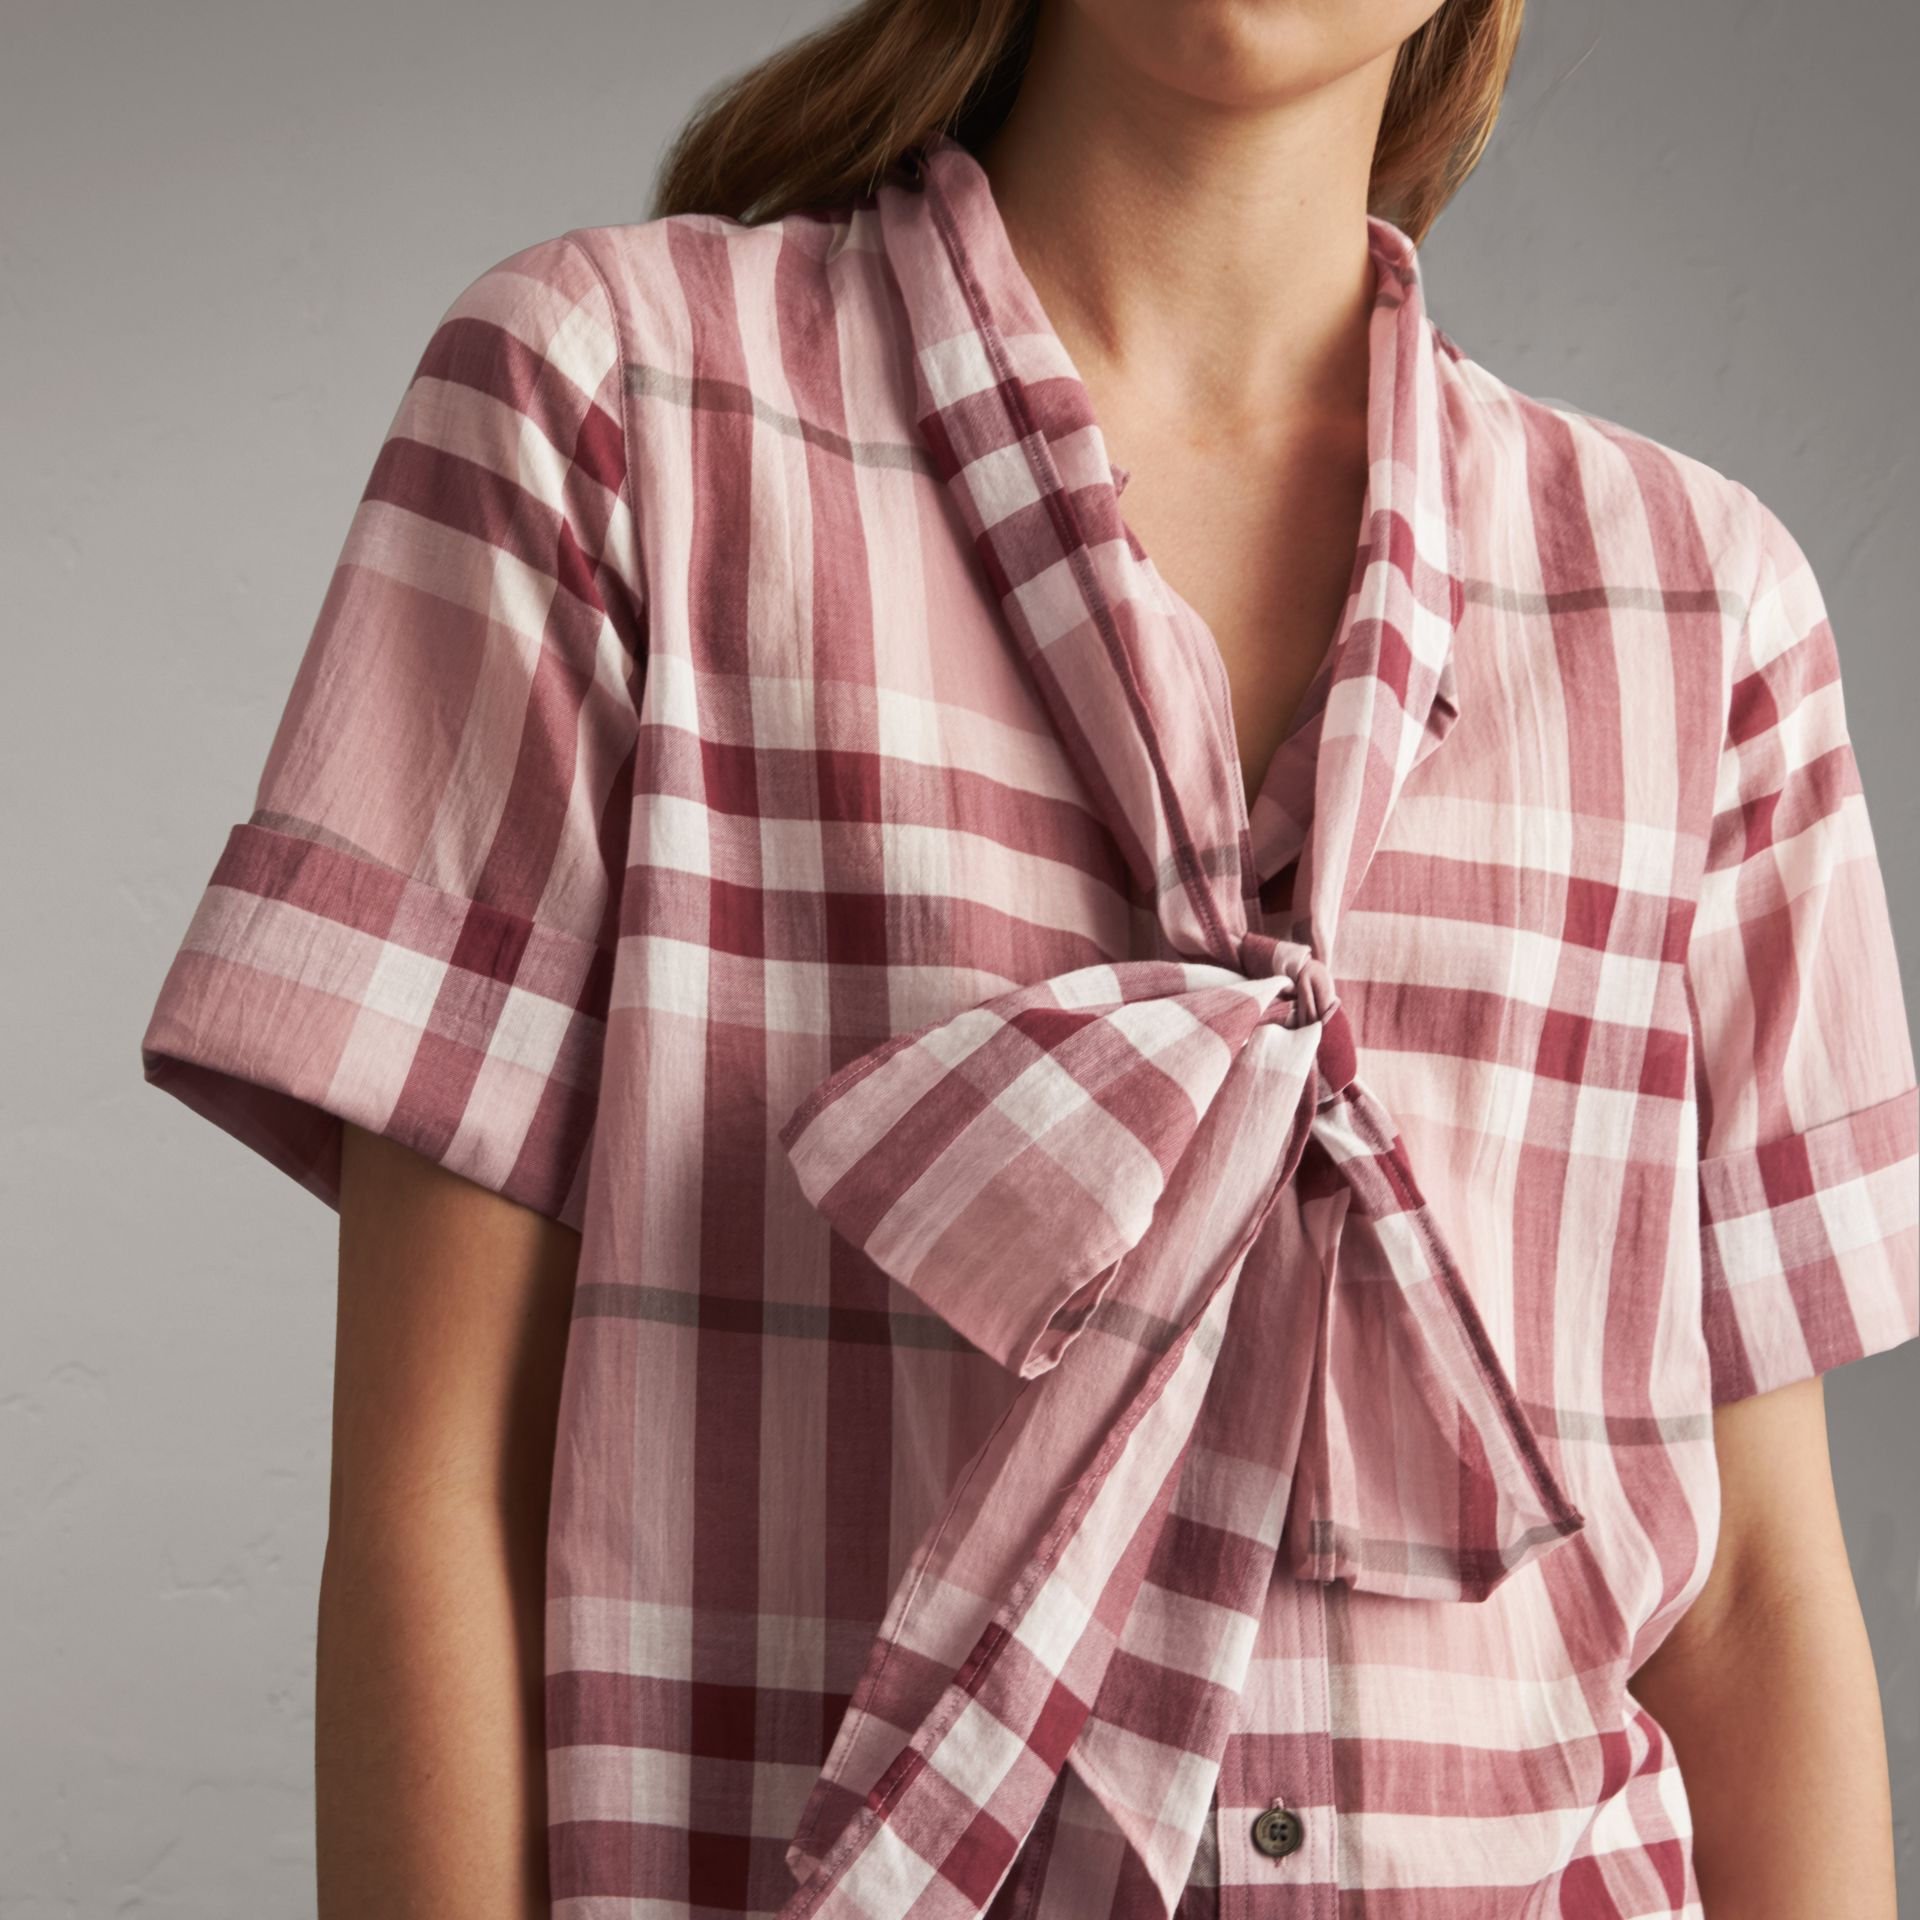 Short-sleeve Check Cotton Tie Neck Shirt in Antique Pink - Women | Burberry - gallery image 6